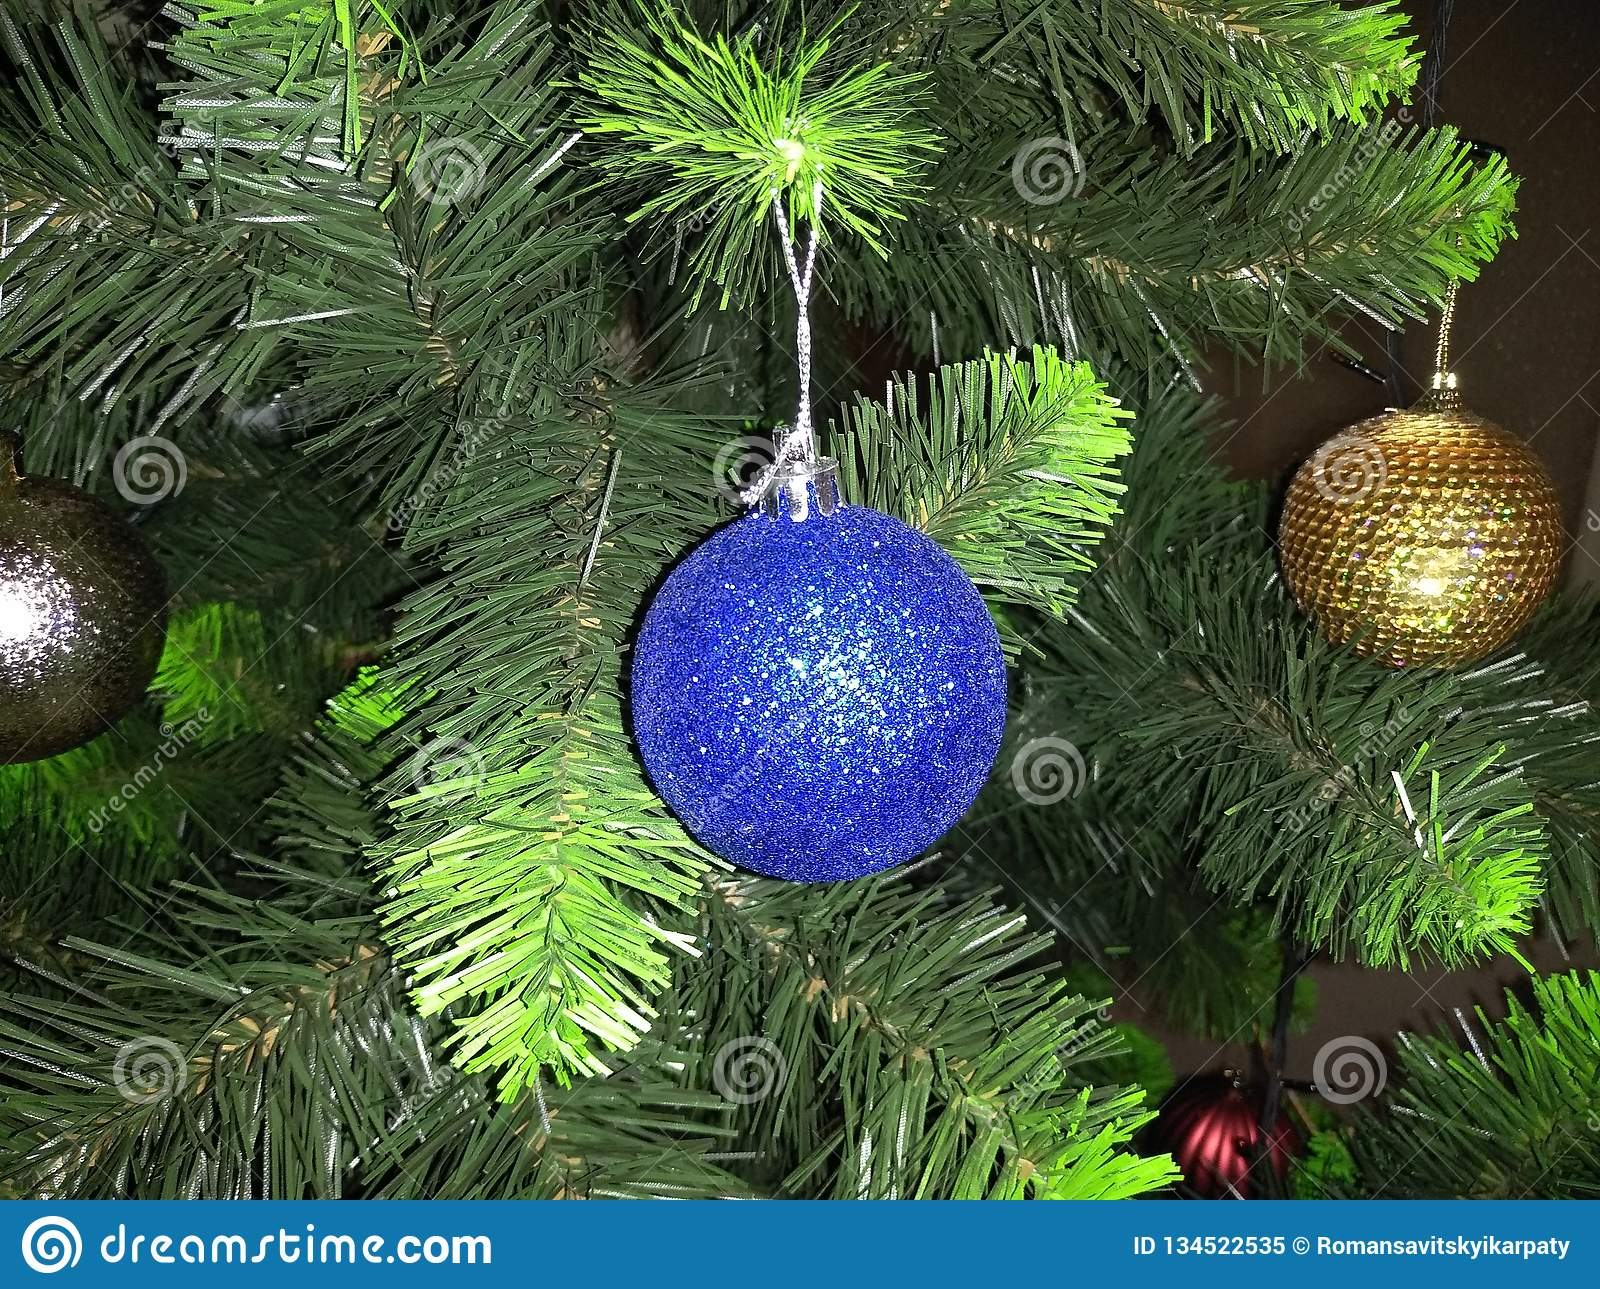 Balloons With Lights On Christmas Trees Stock Image Image Of Trees Lights 134522535